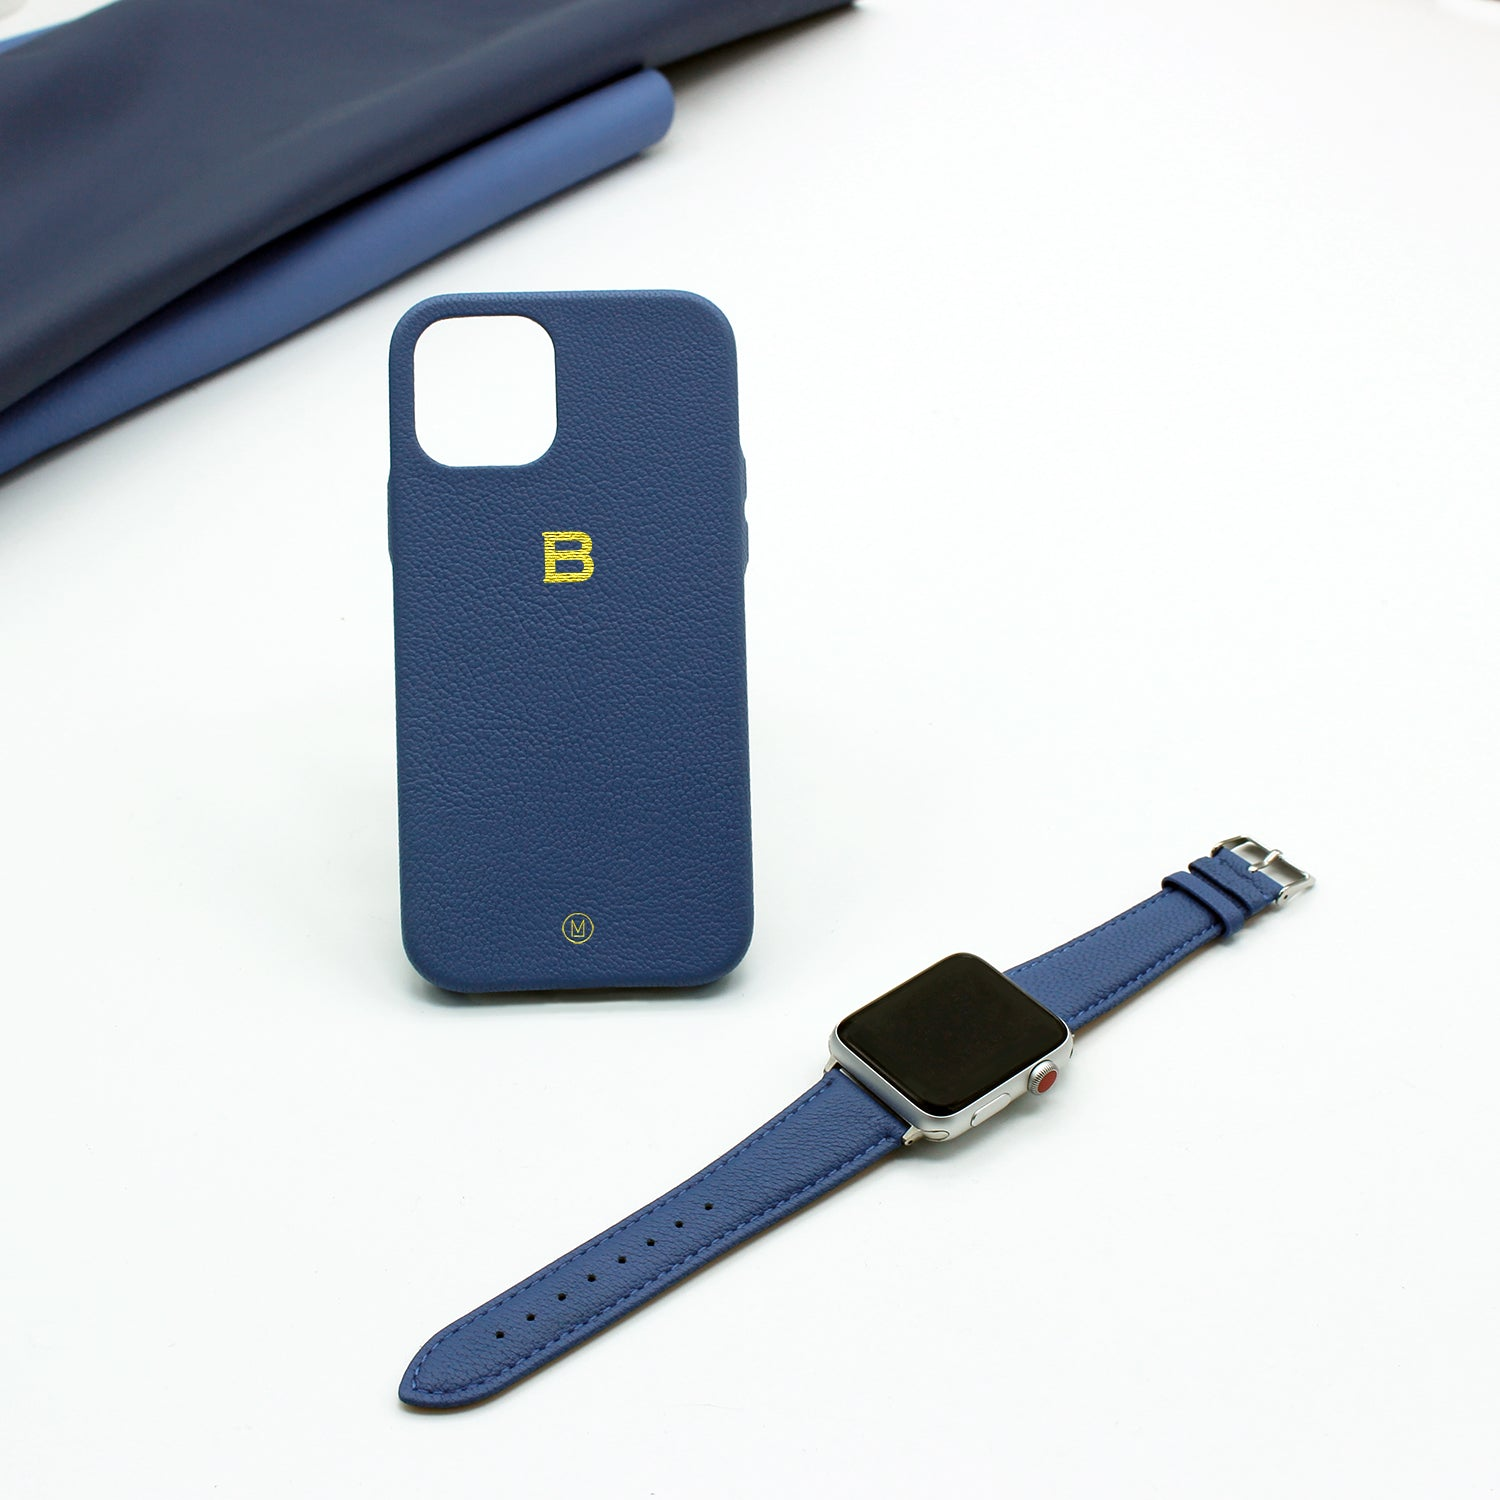 Bundle - iPhone Case + Apple Watch Bands